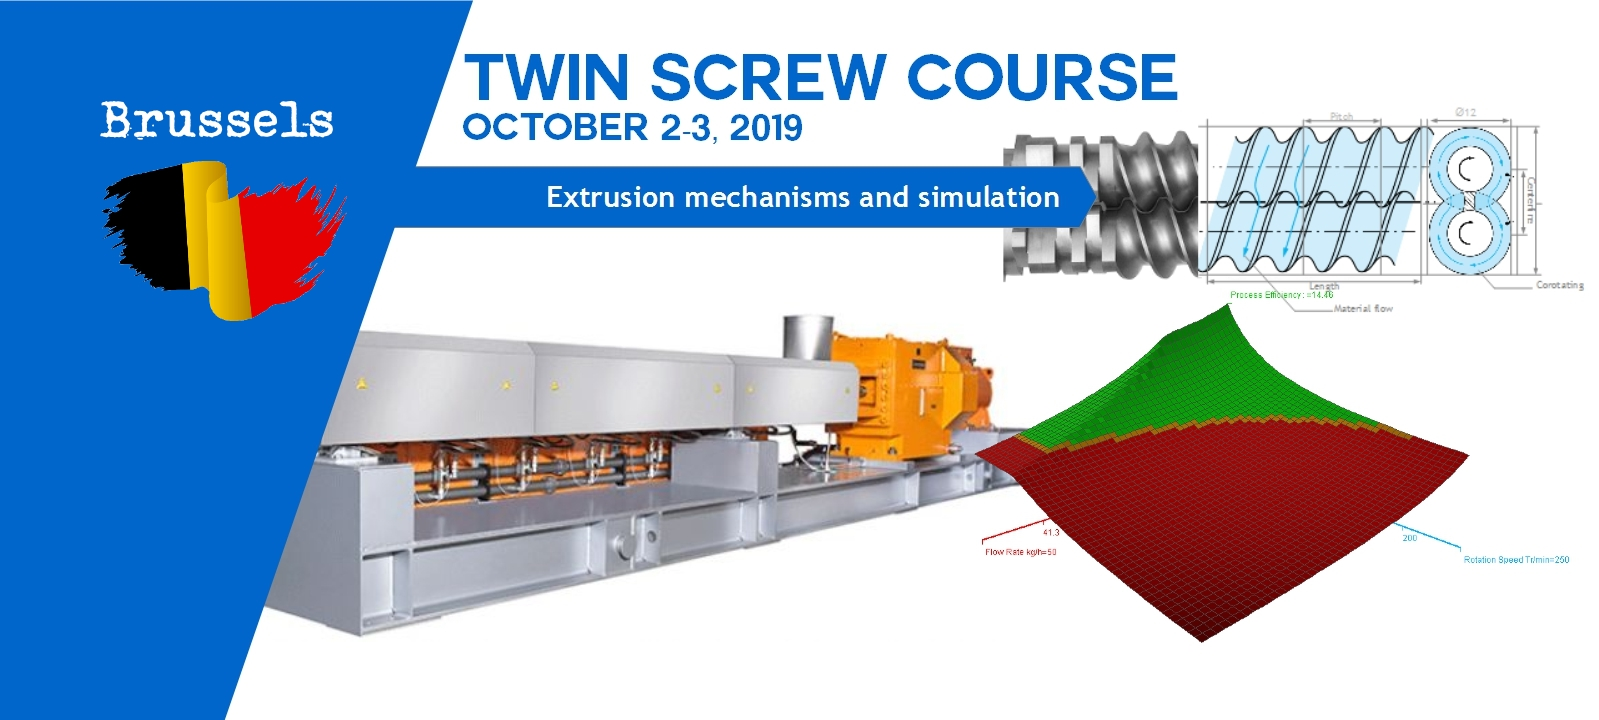 Twin Screw Course 2019